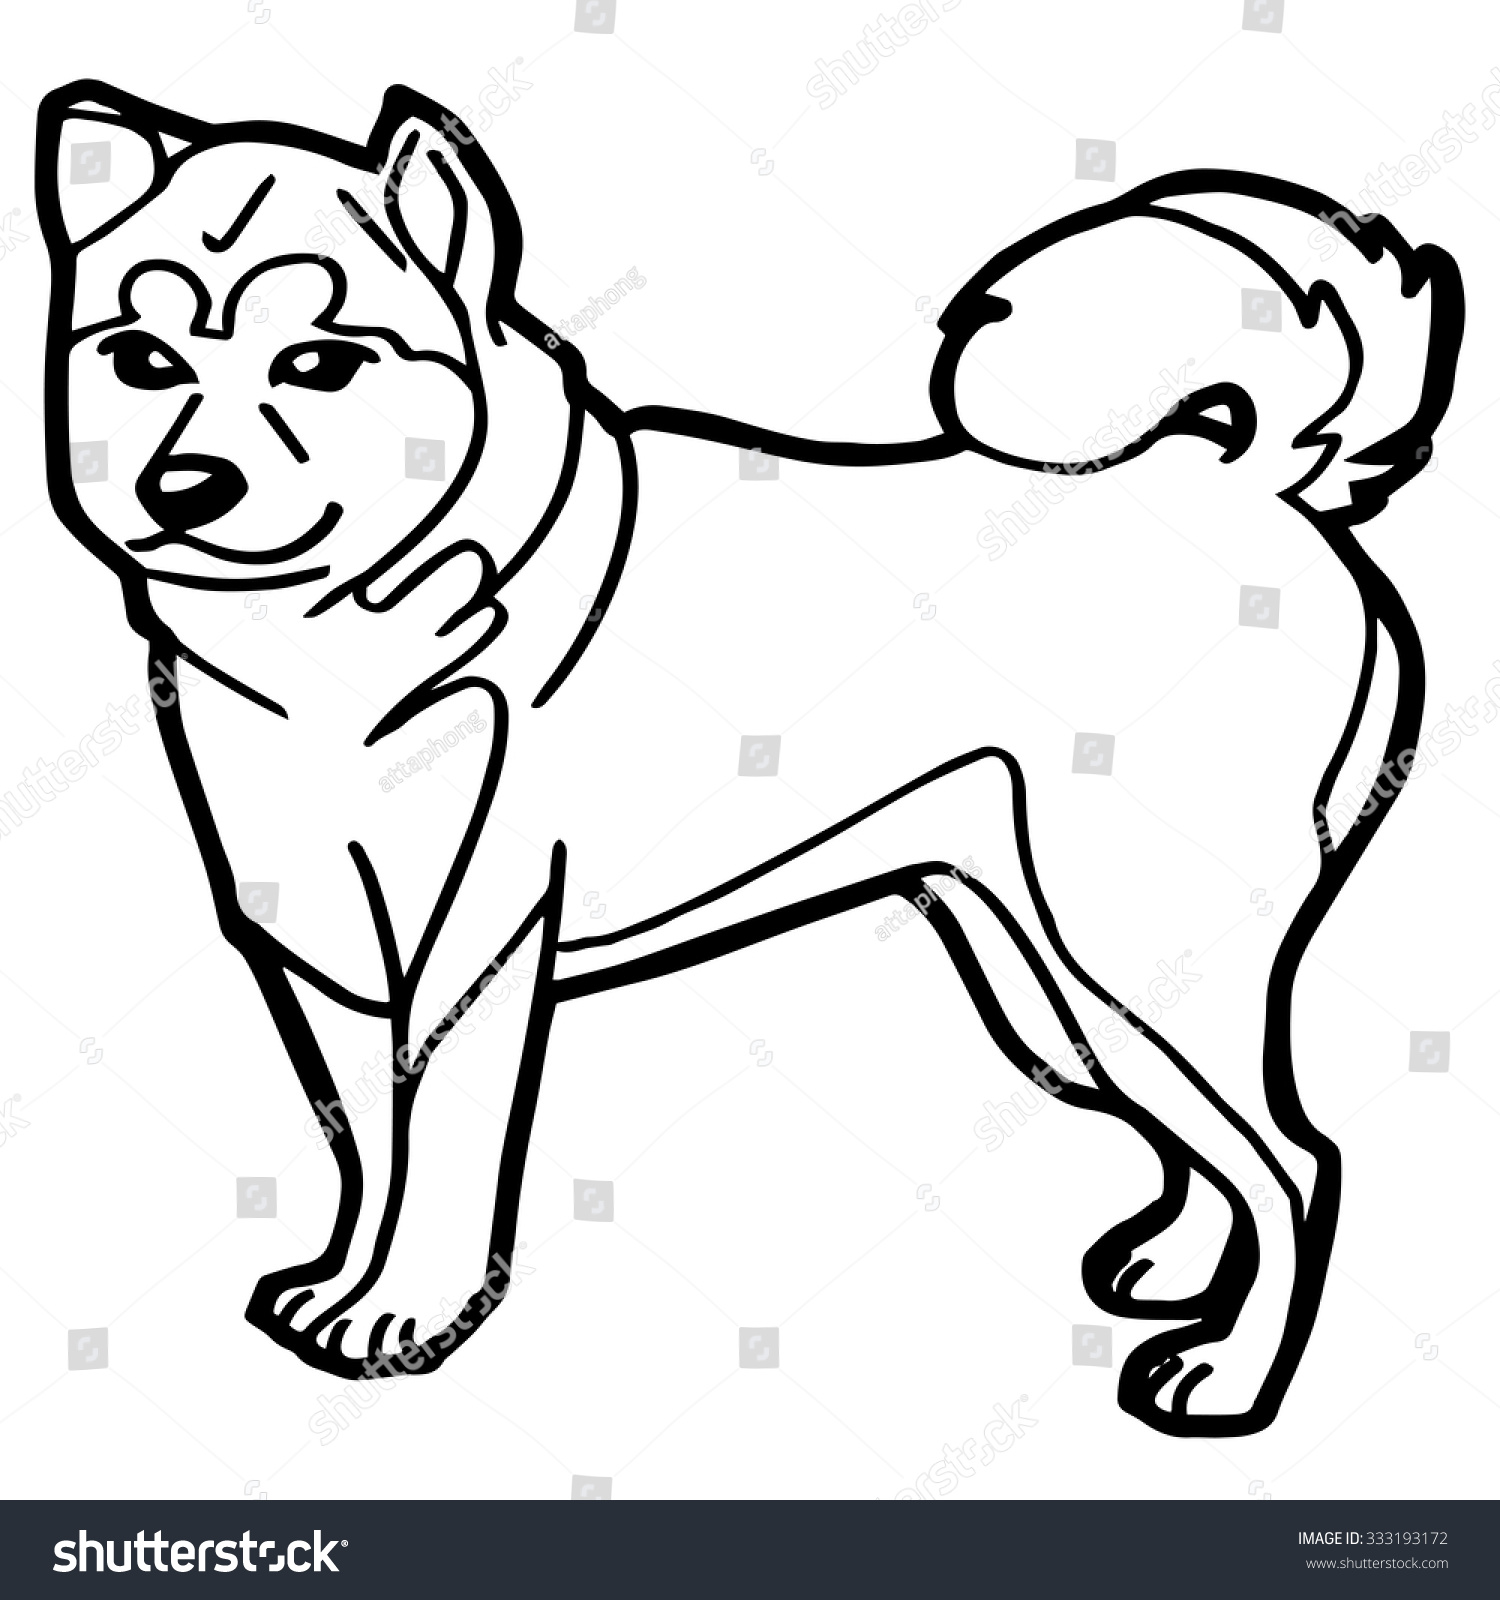 dog puppy coloring page vector stock vector 333193172 shutterstock